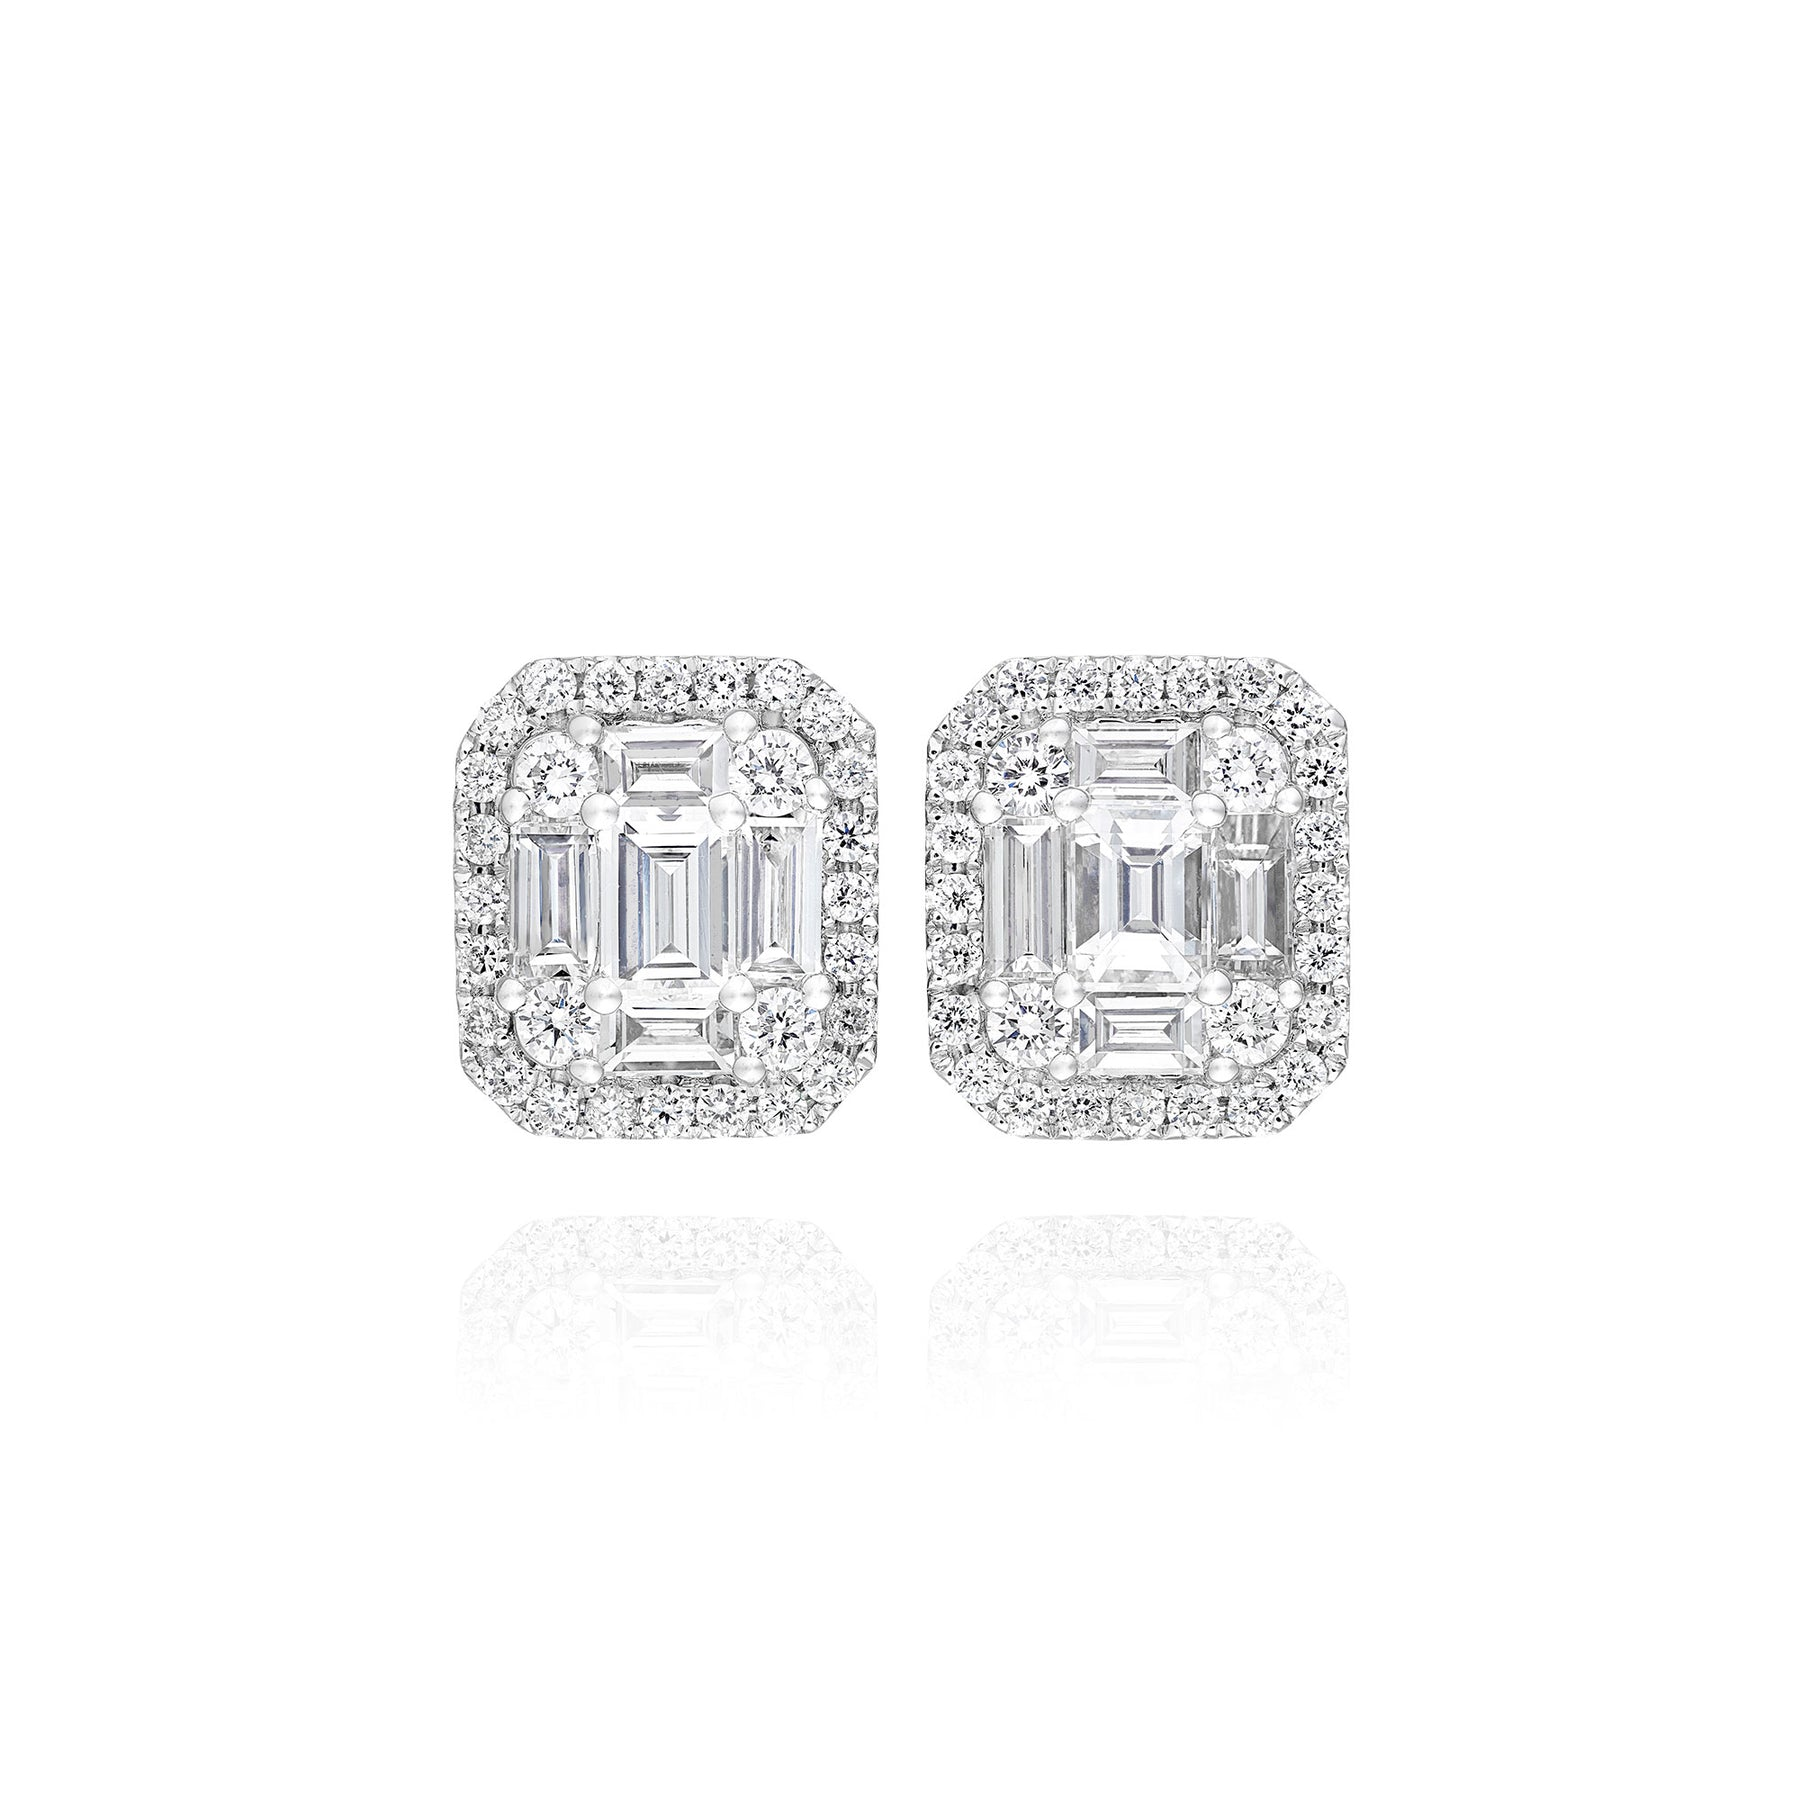 Eternum Baguette Diamond Earrings